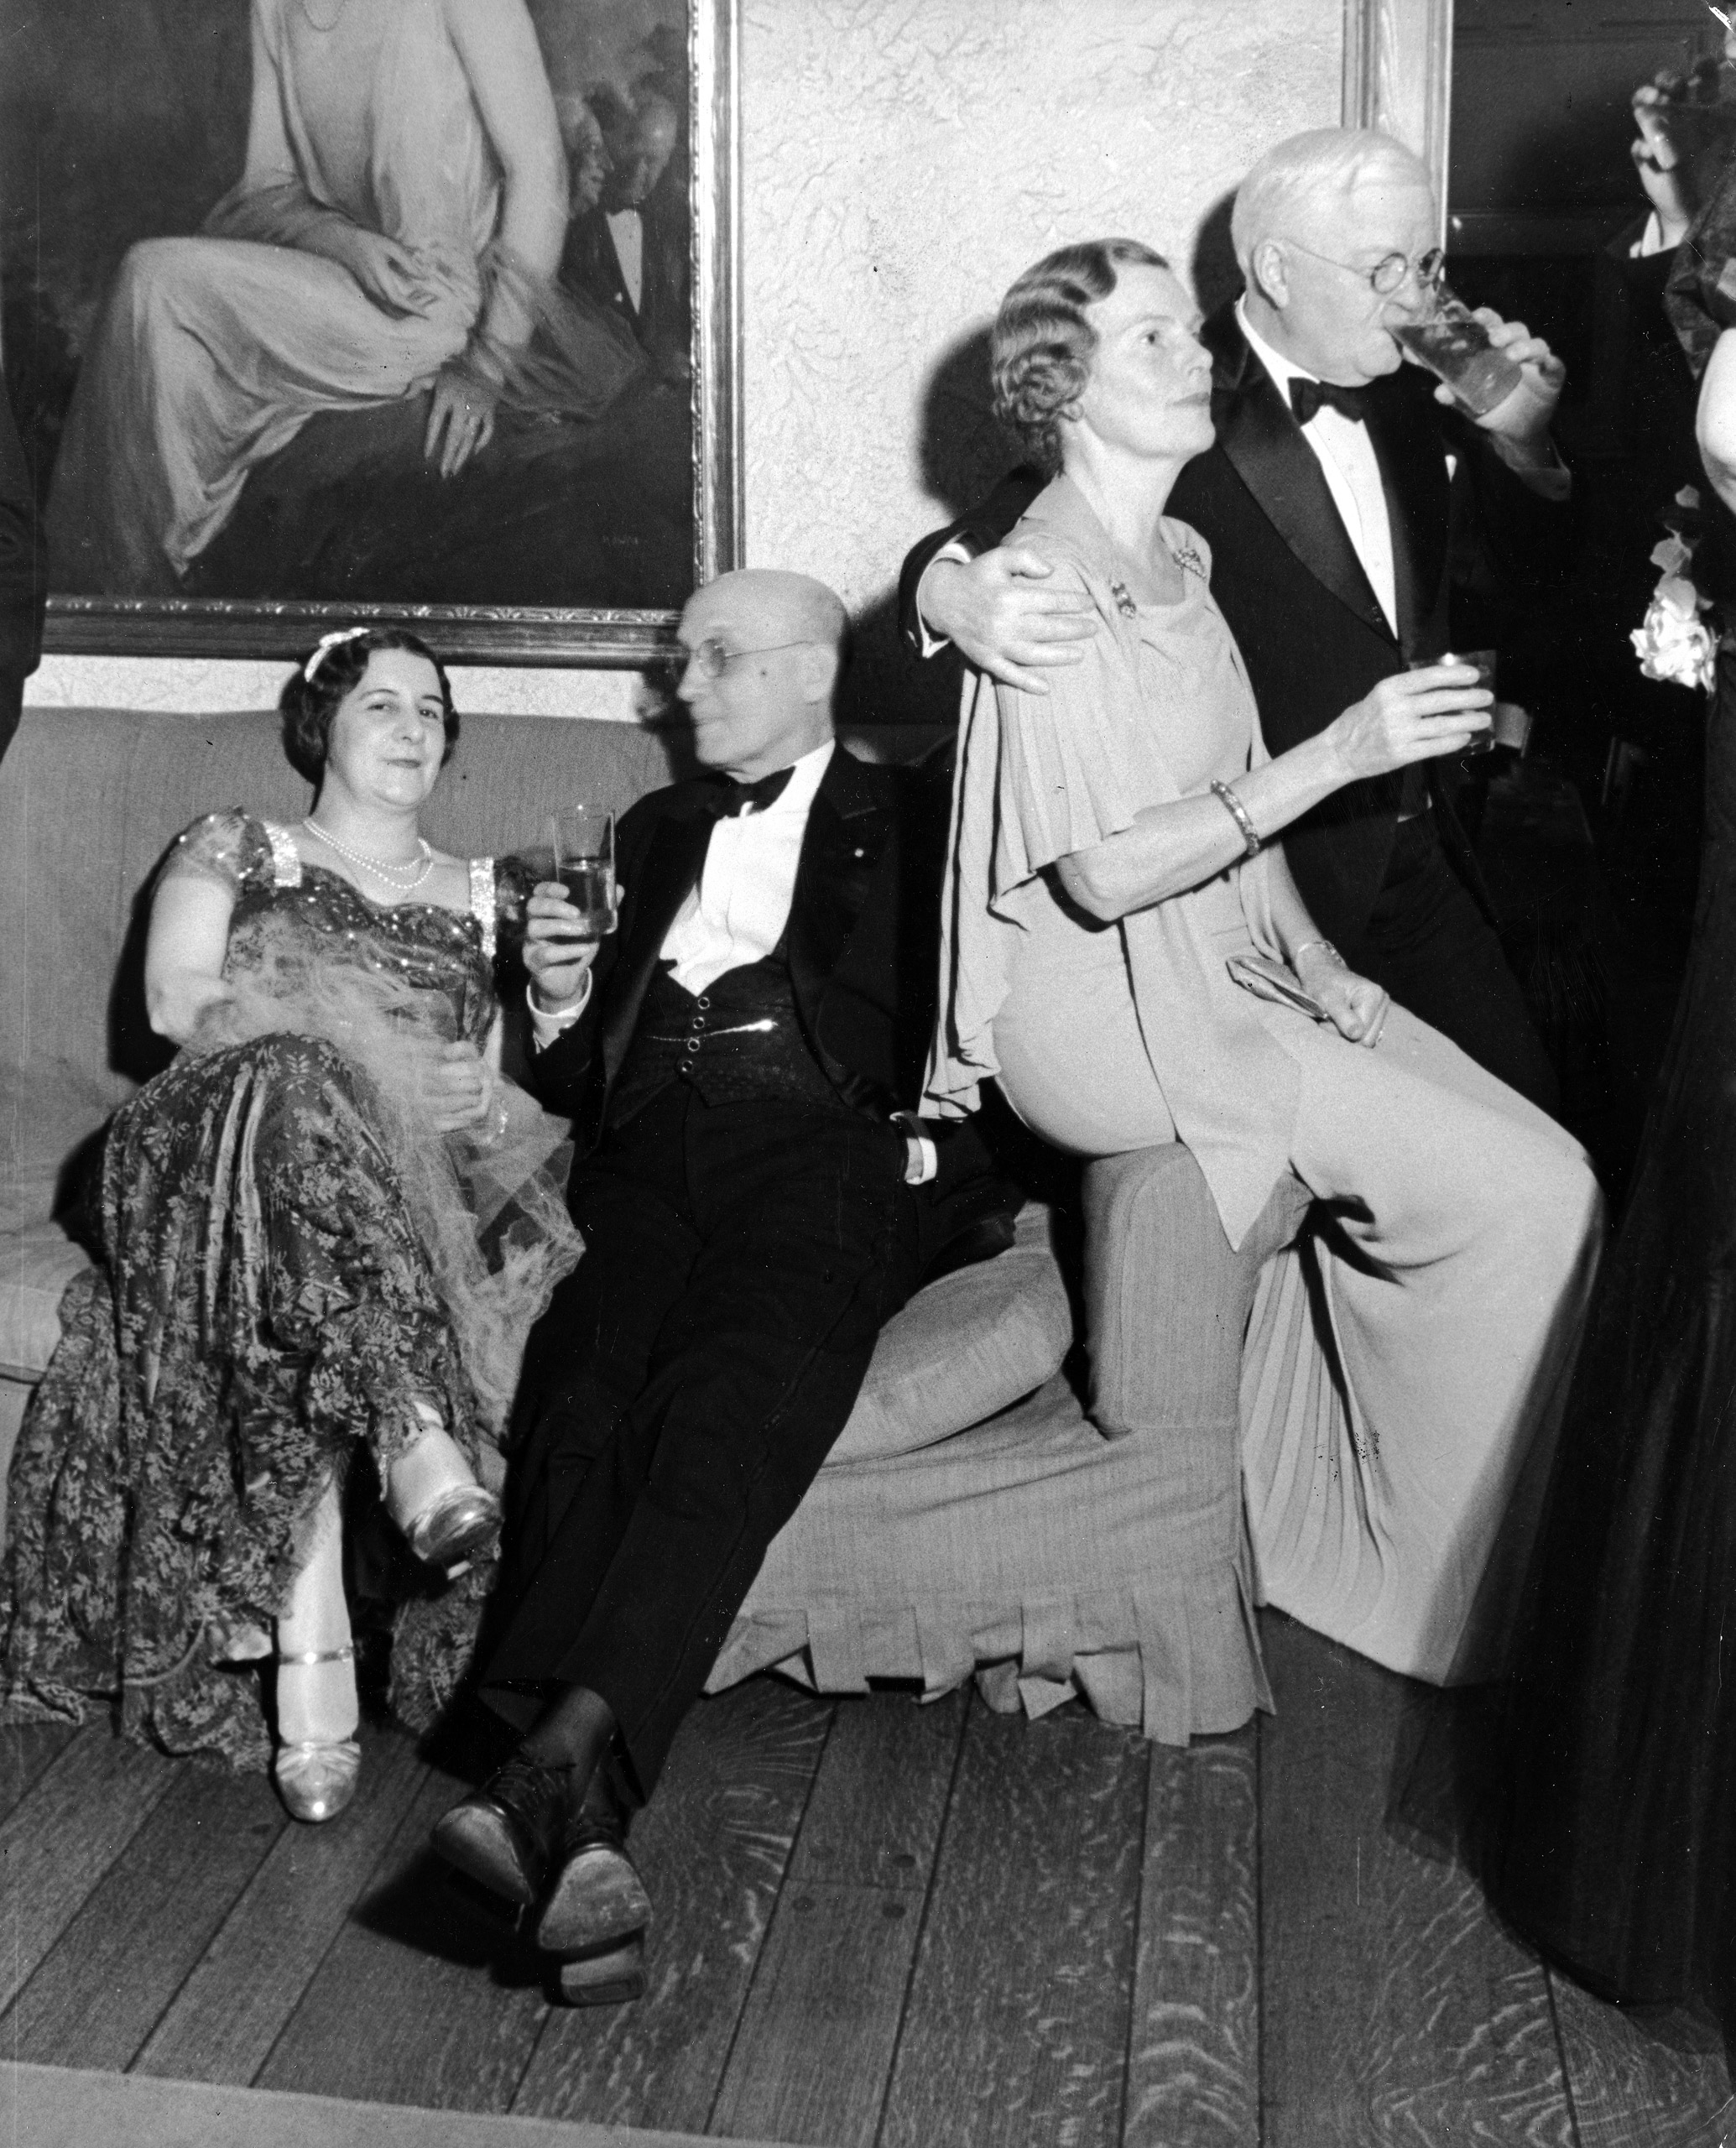 Caption from LIFE. Changing into evening dress, many Van Winkle guests proceeded to Mrs. Henry J. Powell's buffet supper. Above, left to right, Mrs. Rowan Morrison, Gustave Breux, Mrs. William C. Hall and Judge Arthur Peter. The tall glasses contain not mint juleps but Bourbon and soda.